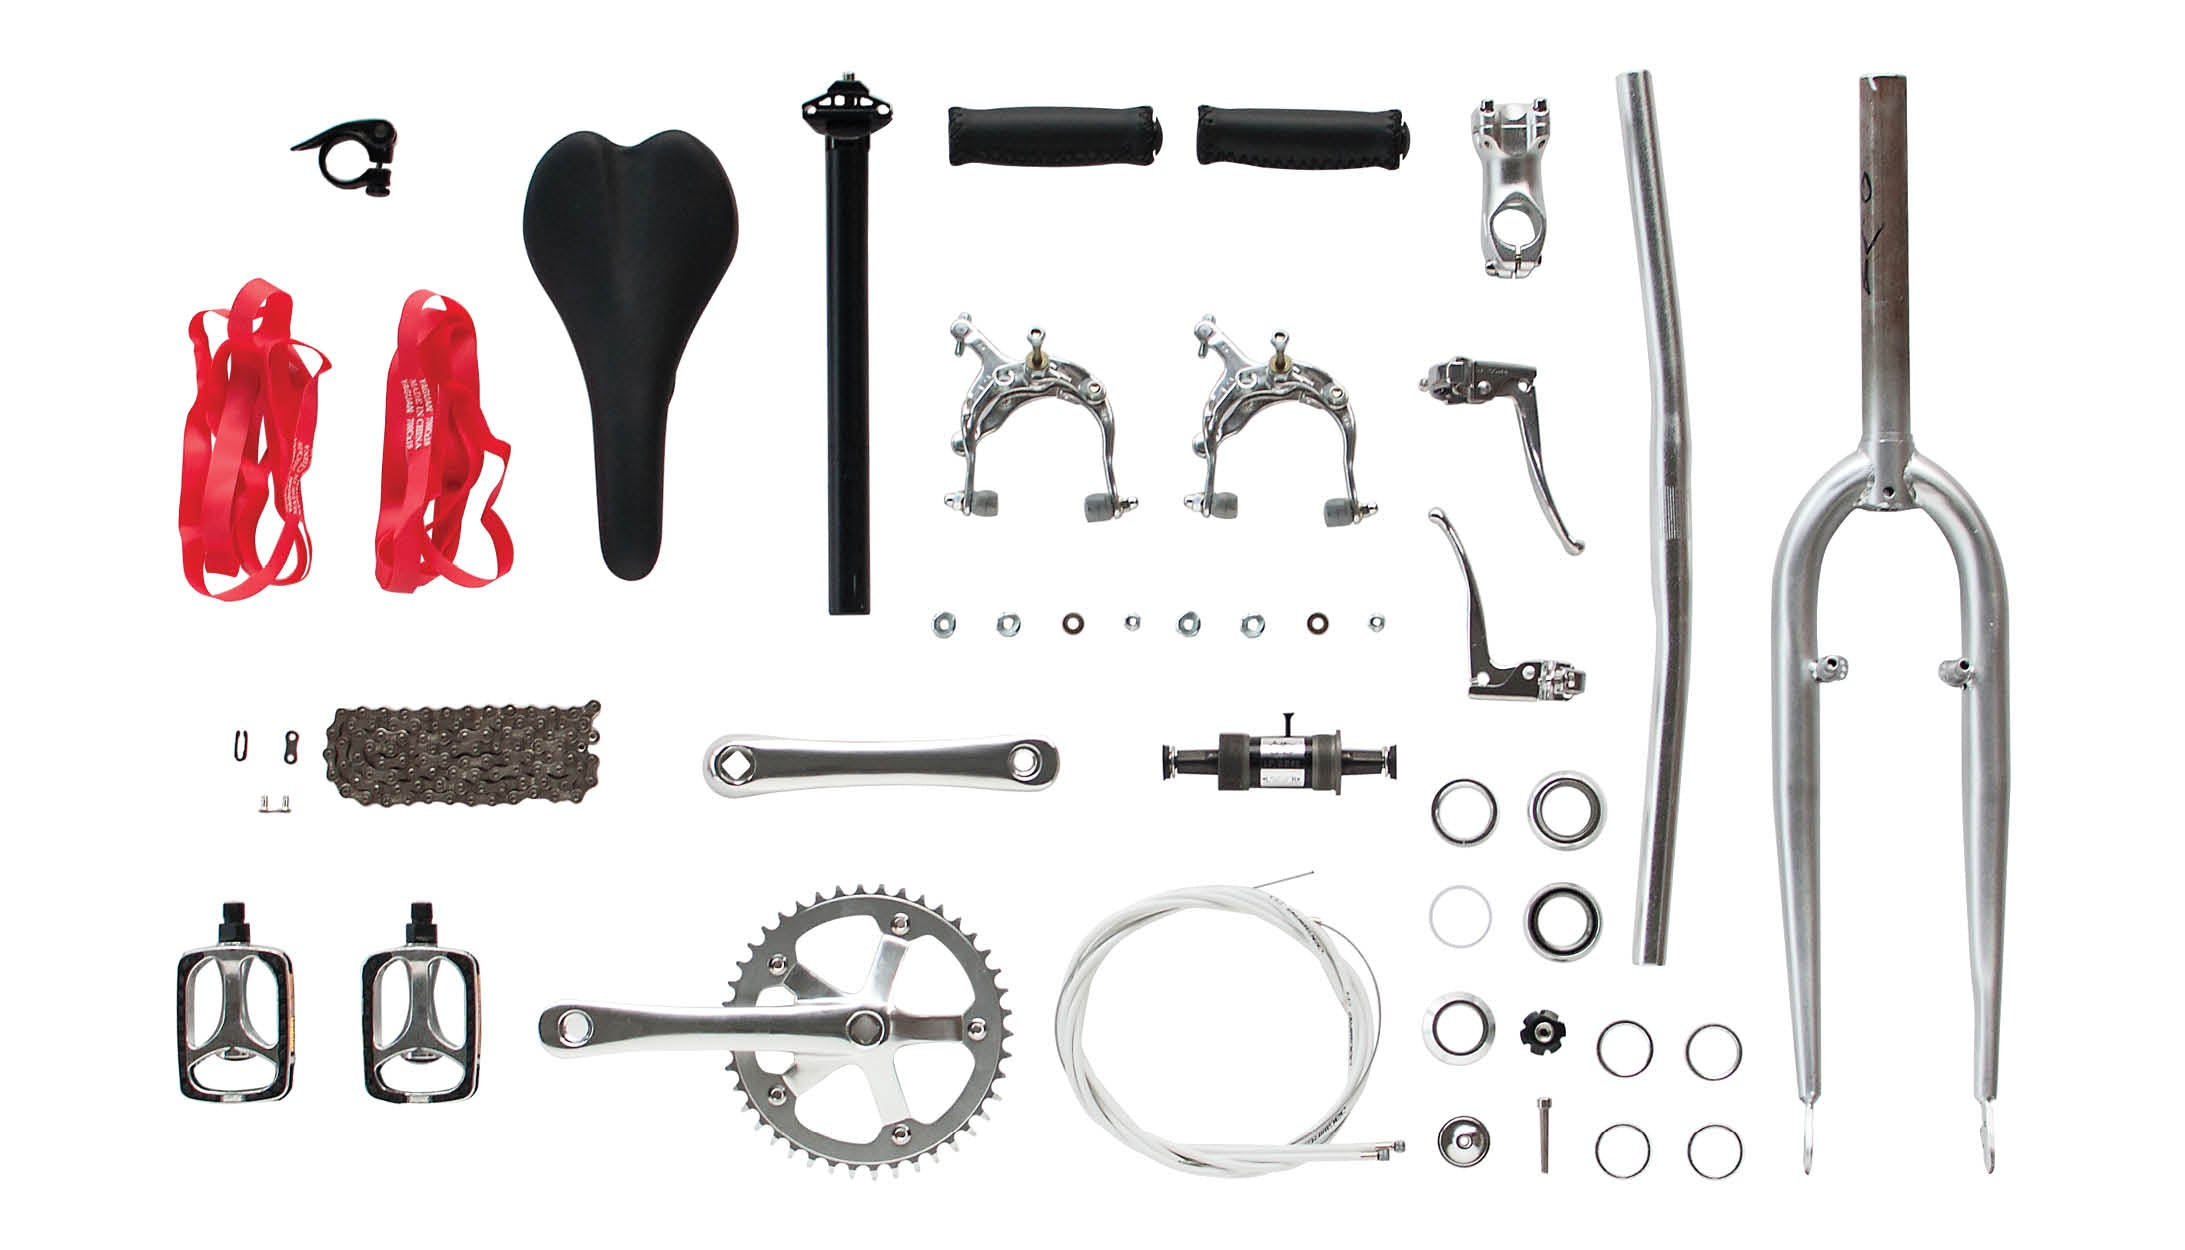 Build It Yourself Bicycle Parts Bamboobee